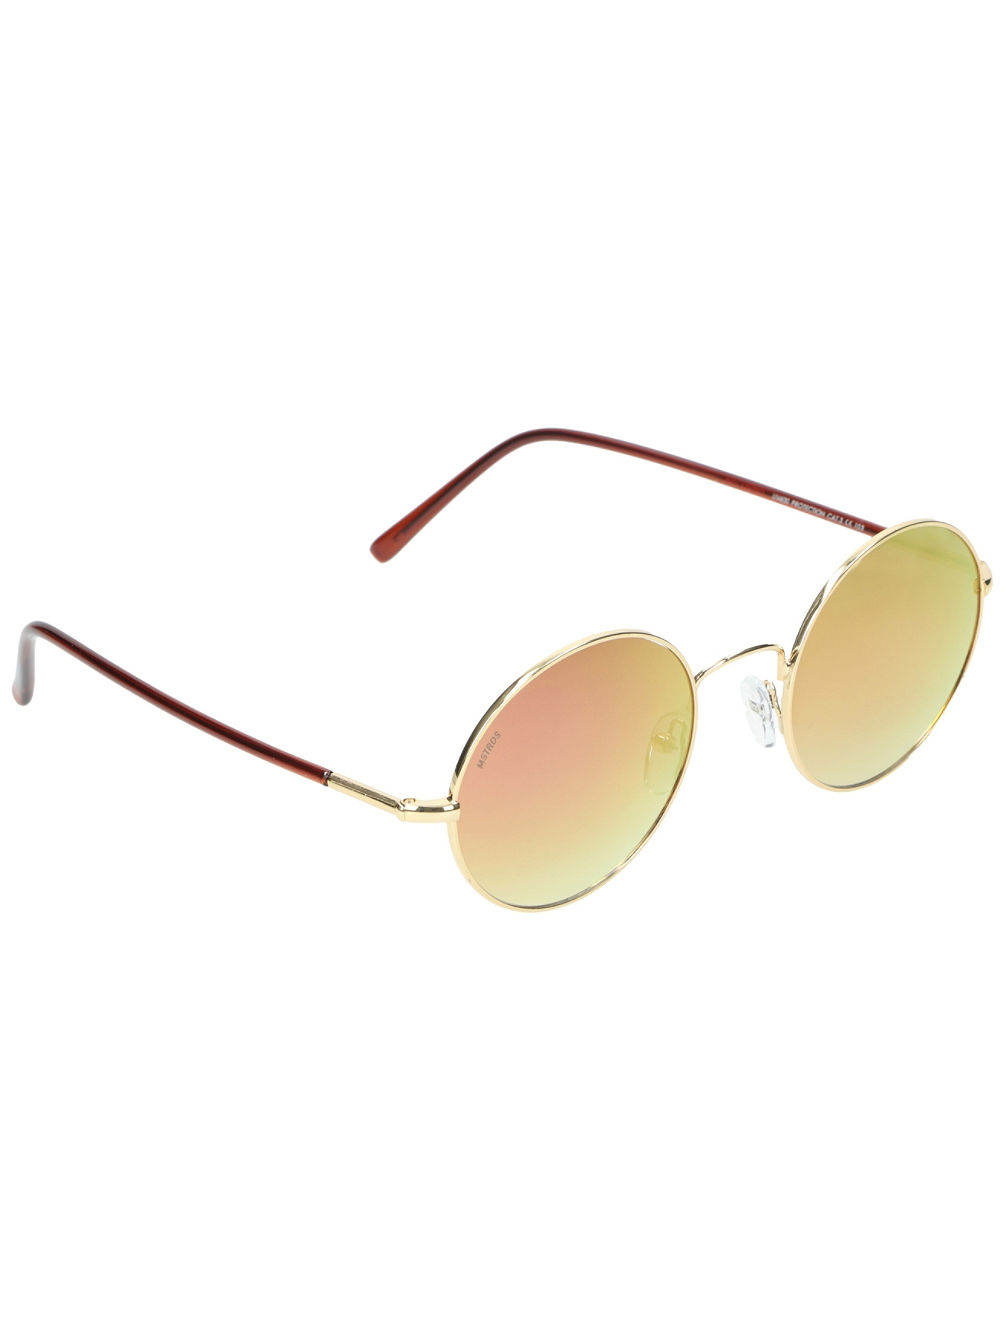 Flower Gold Sonnenbrille